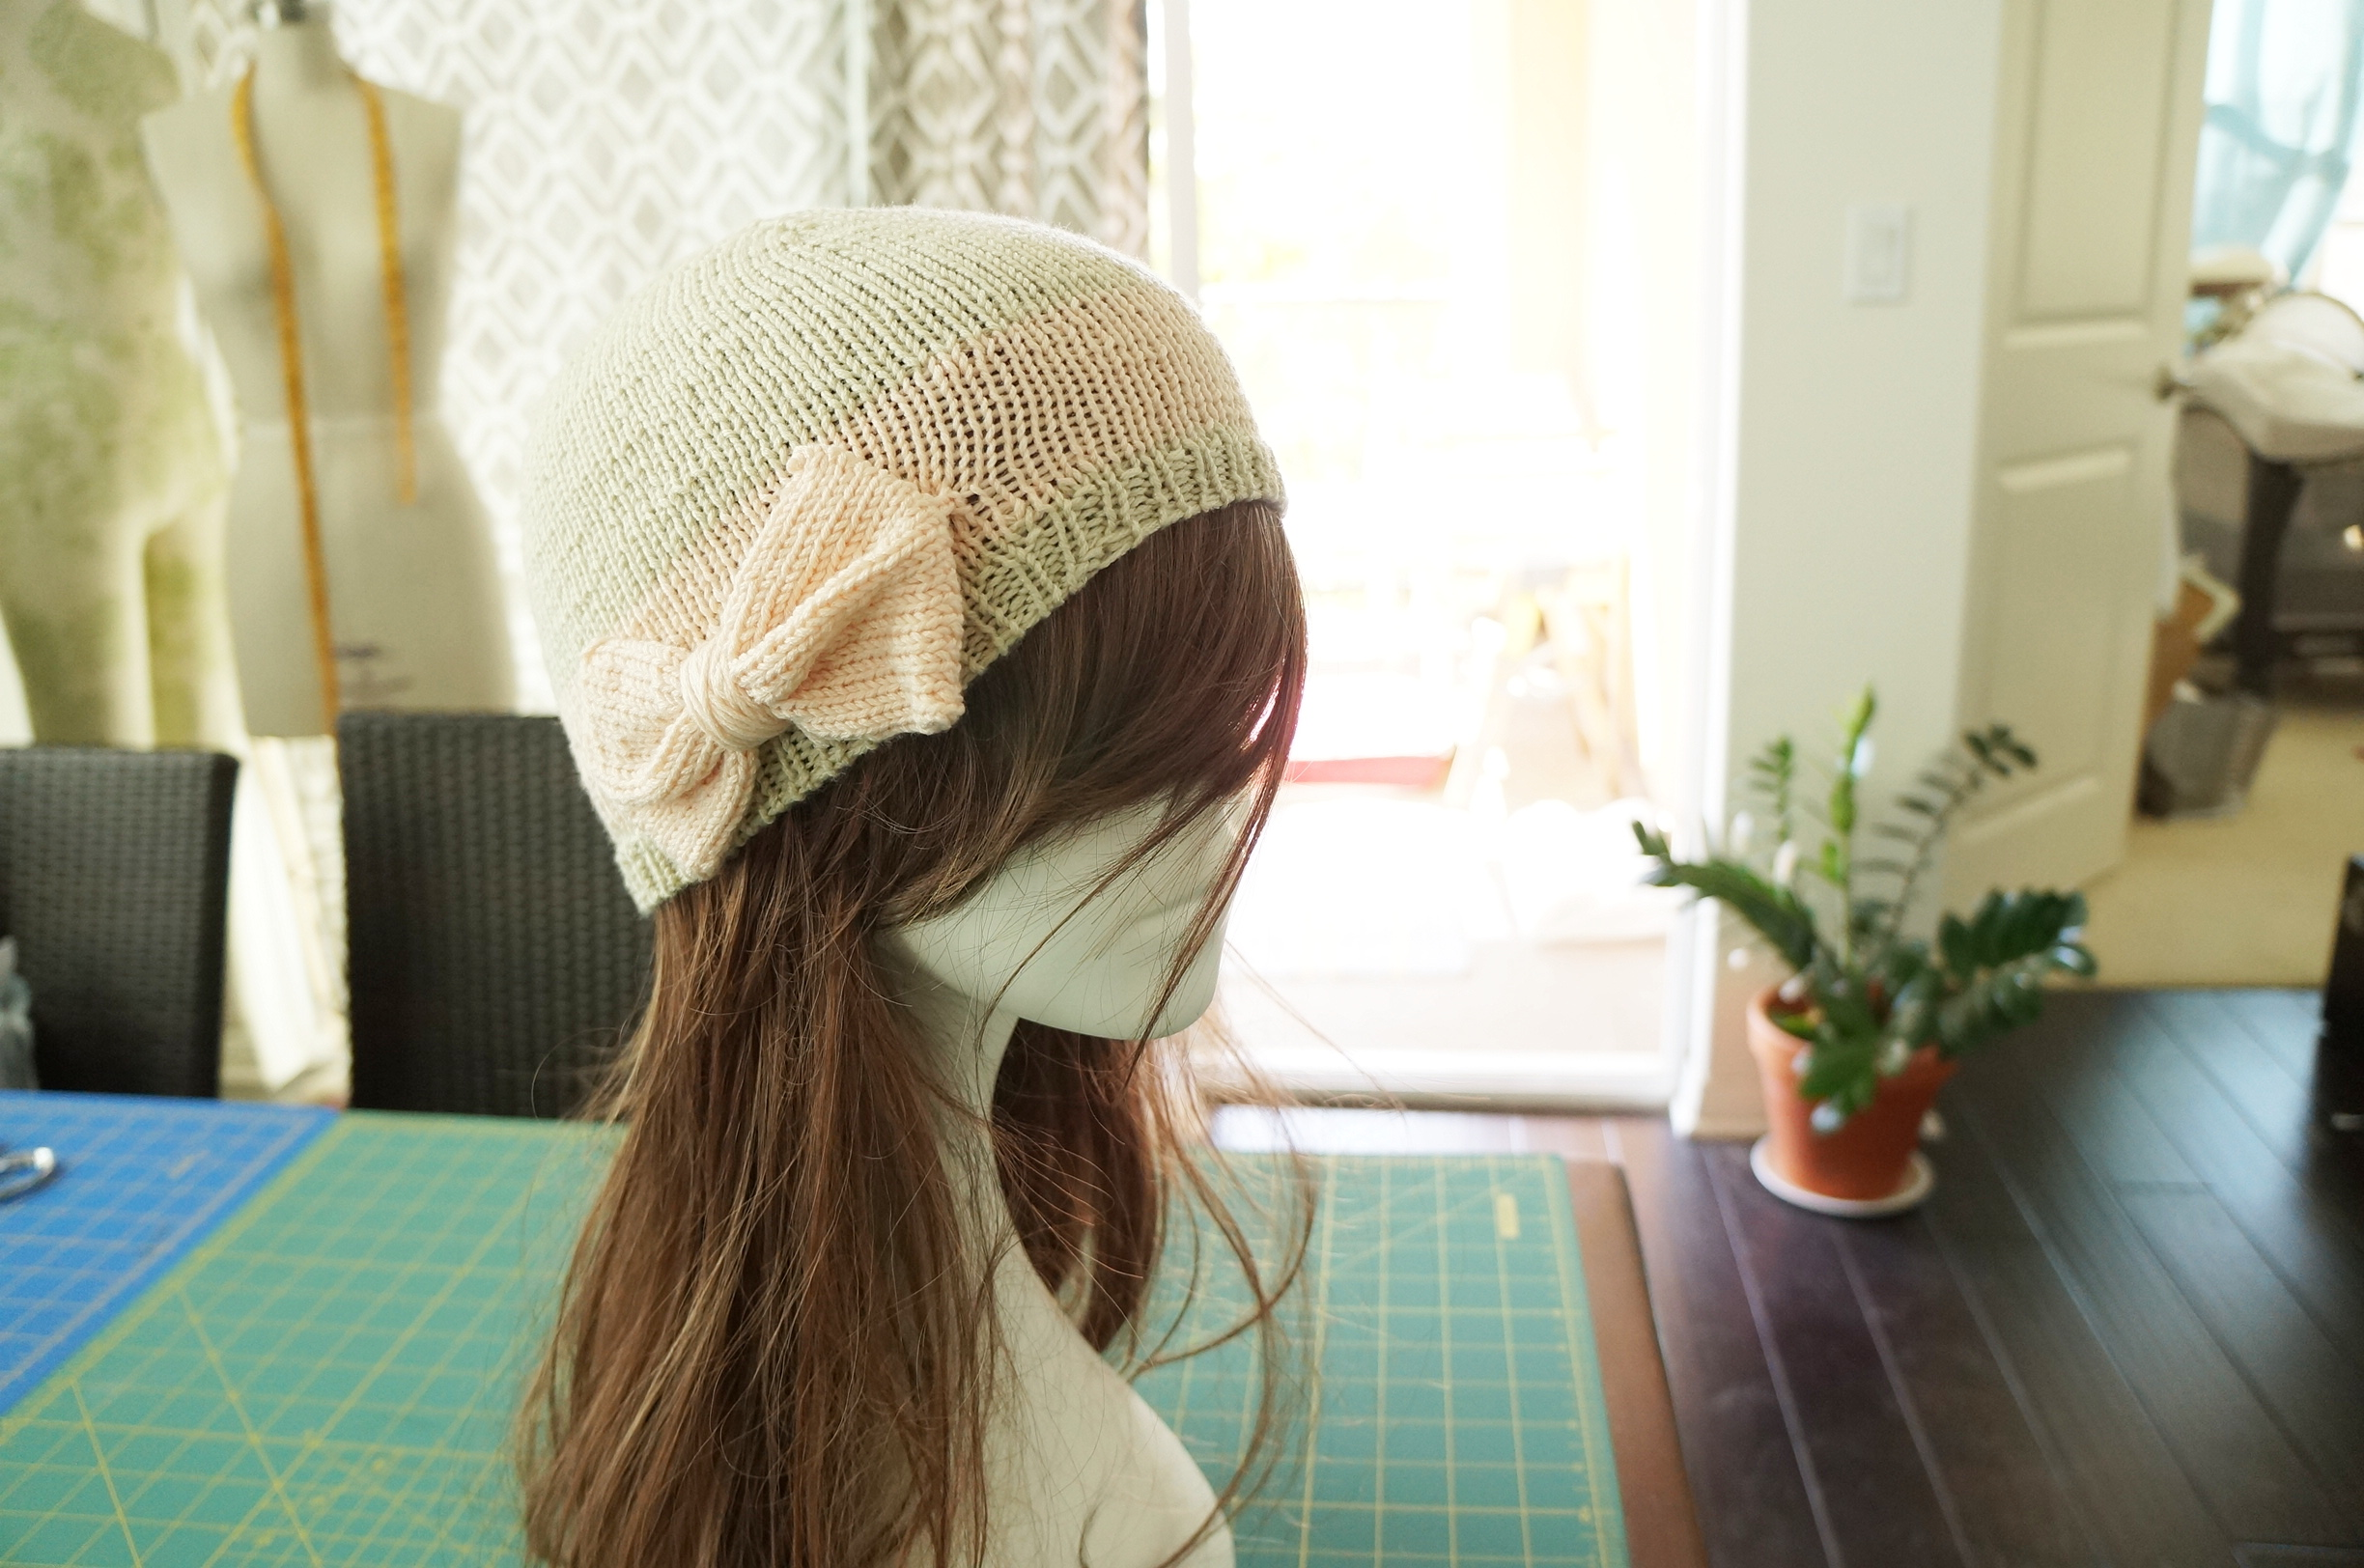 Original Design: Hat with a bow (2)